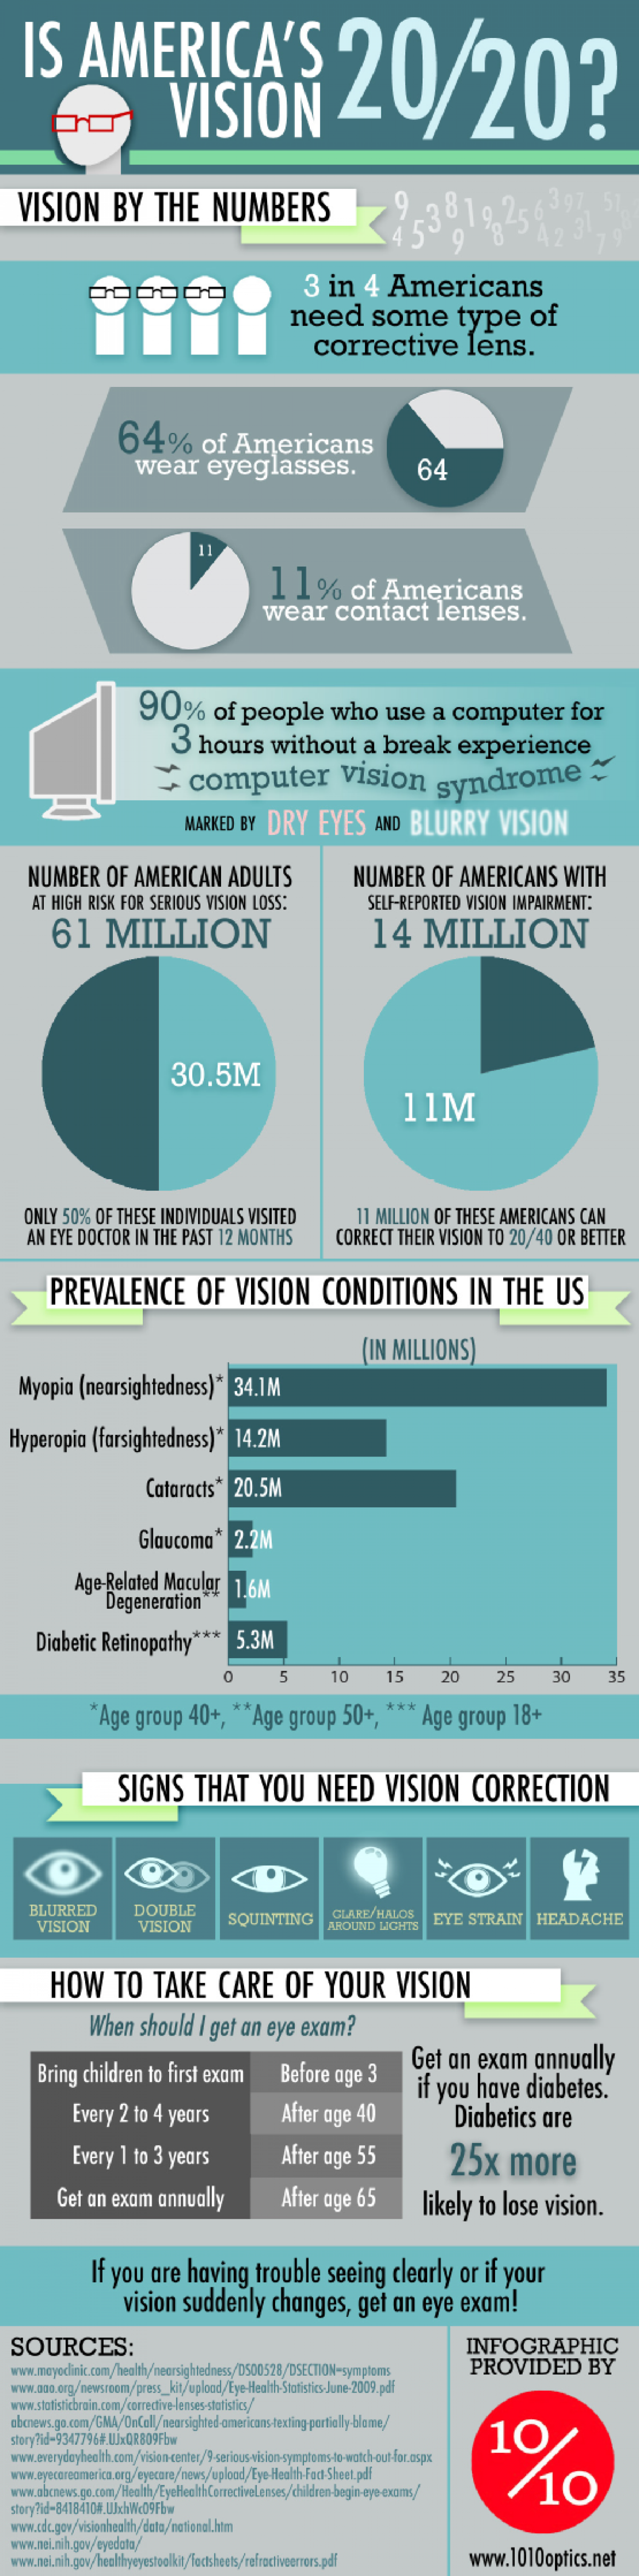 Is America's Vision 20/20? Infographic